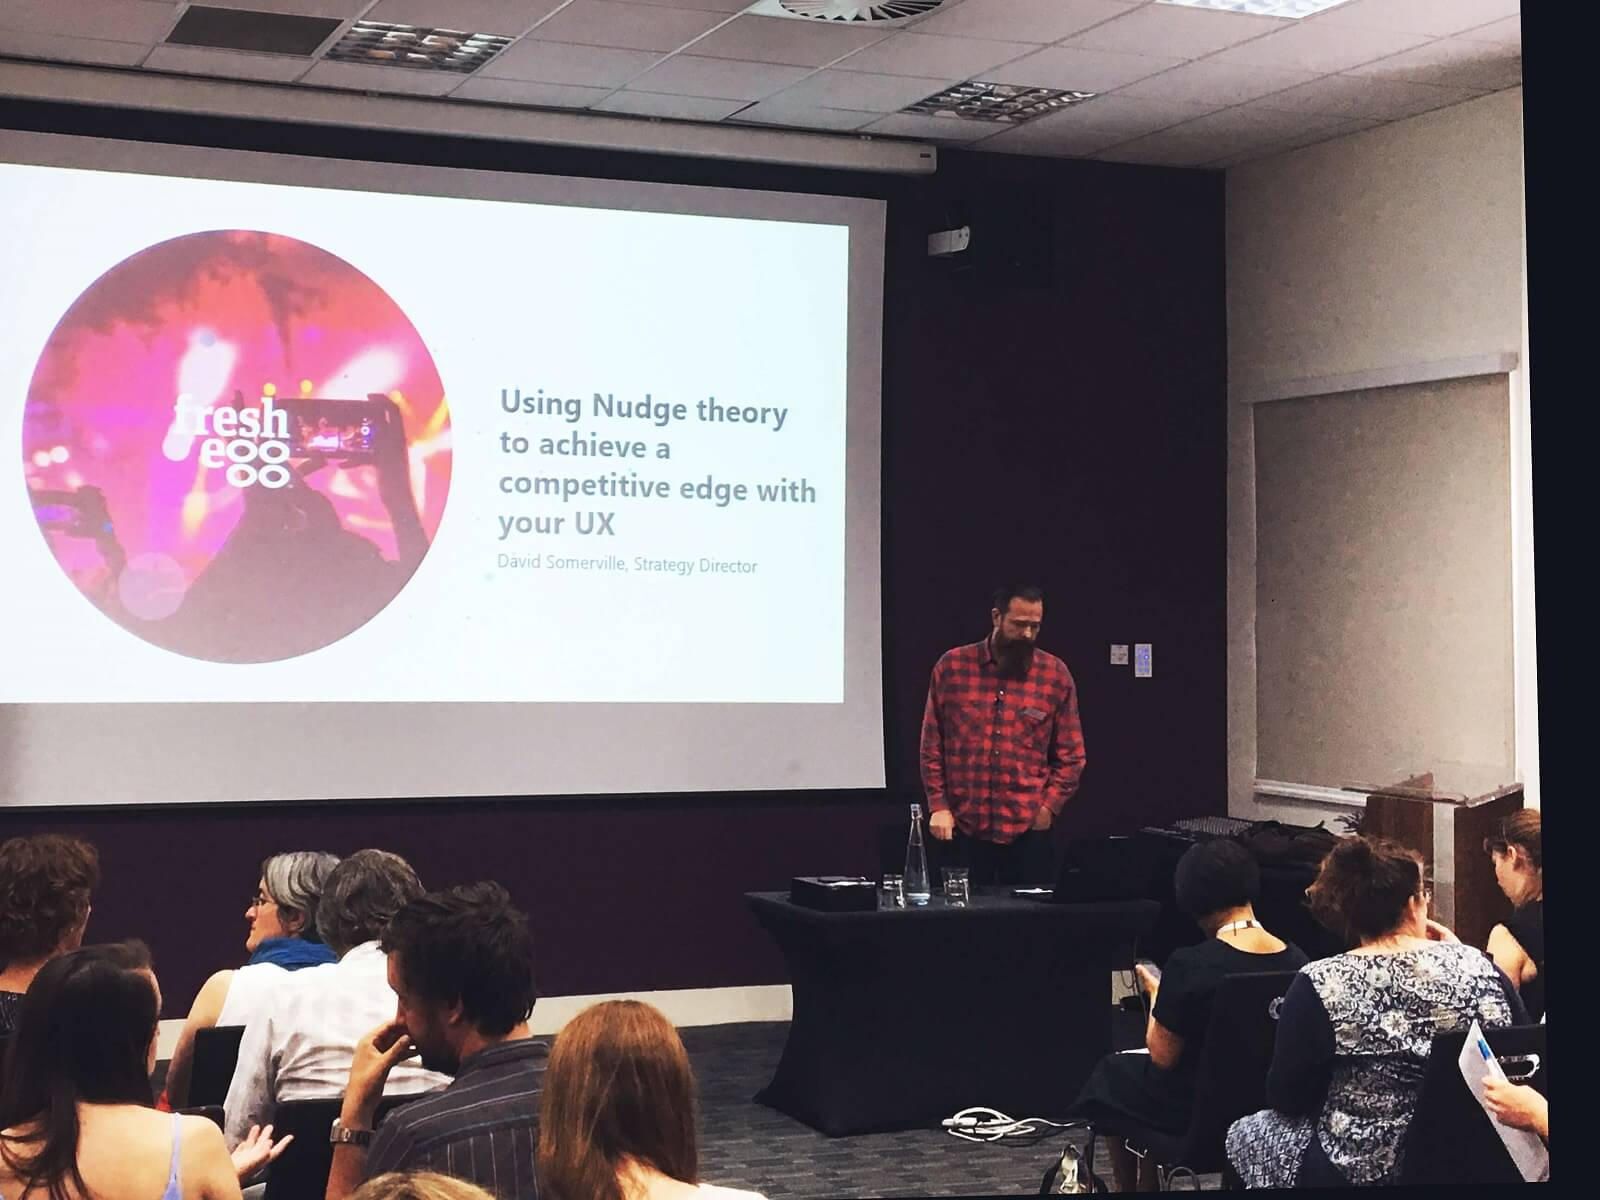 David Somerville Presenting 'Nudge Theory'